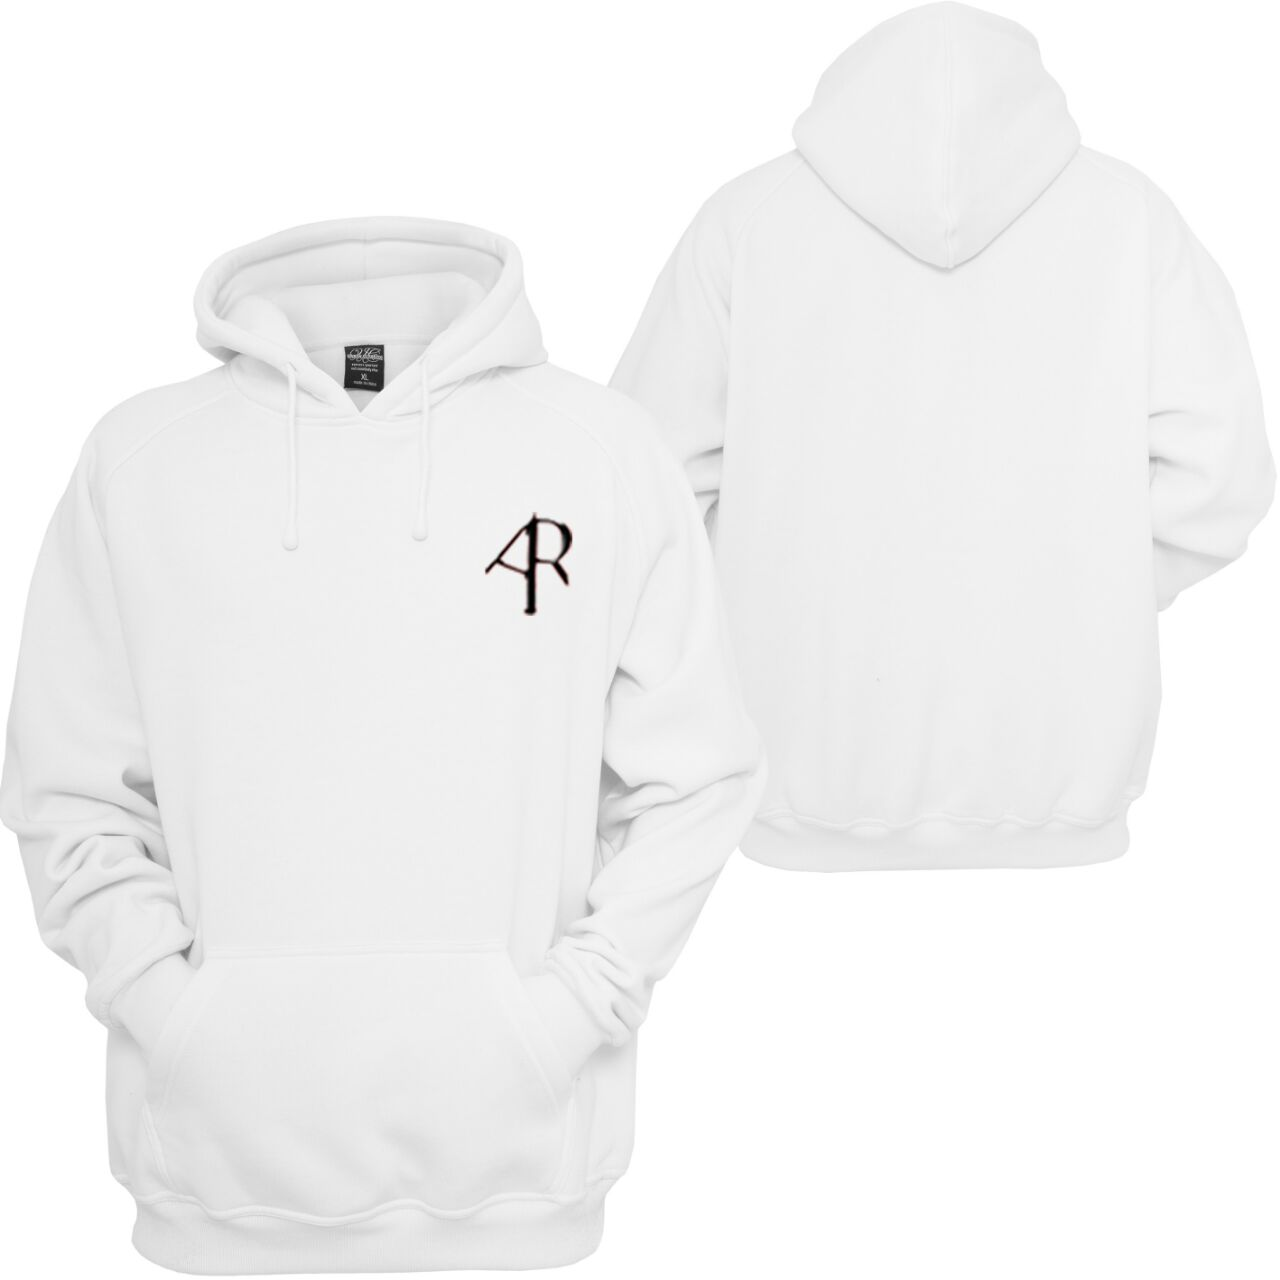 SHOP APOLO ET ROMA SWEATSHIRTS (Free, Express Delivery)